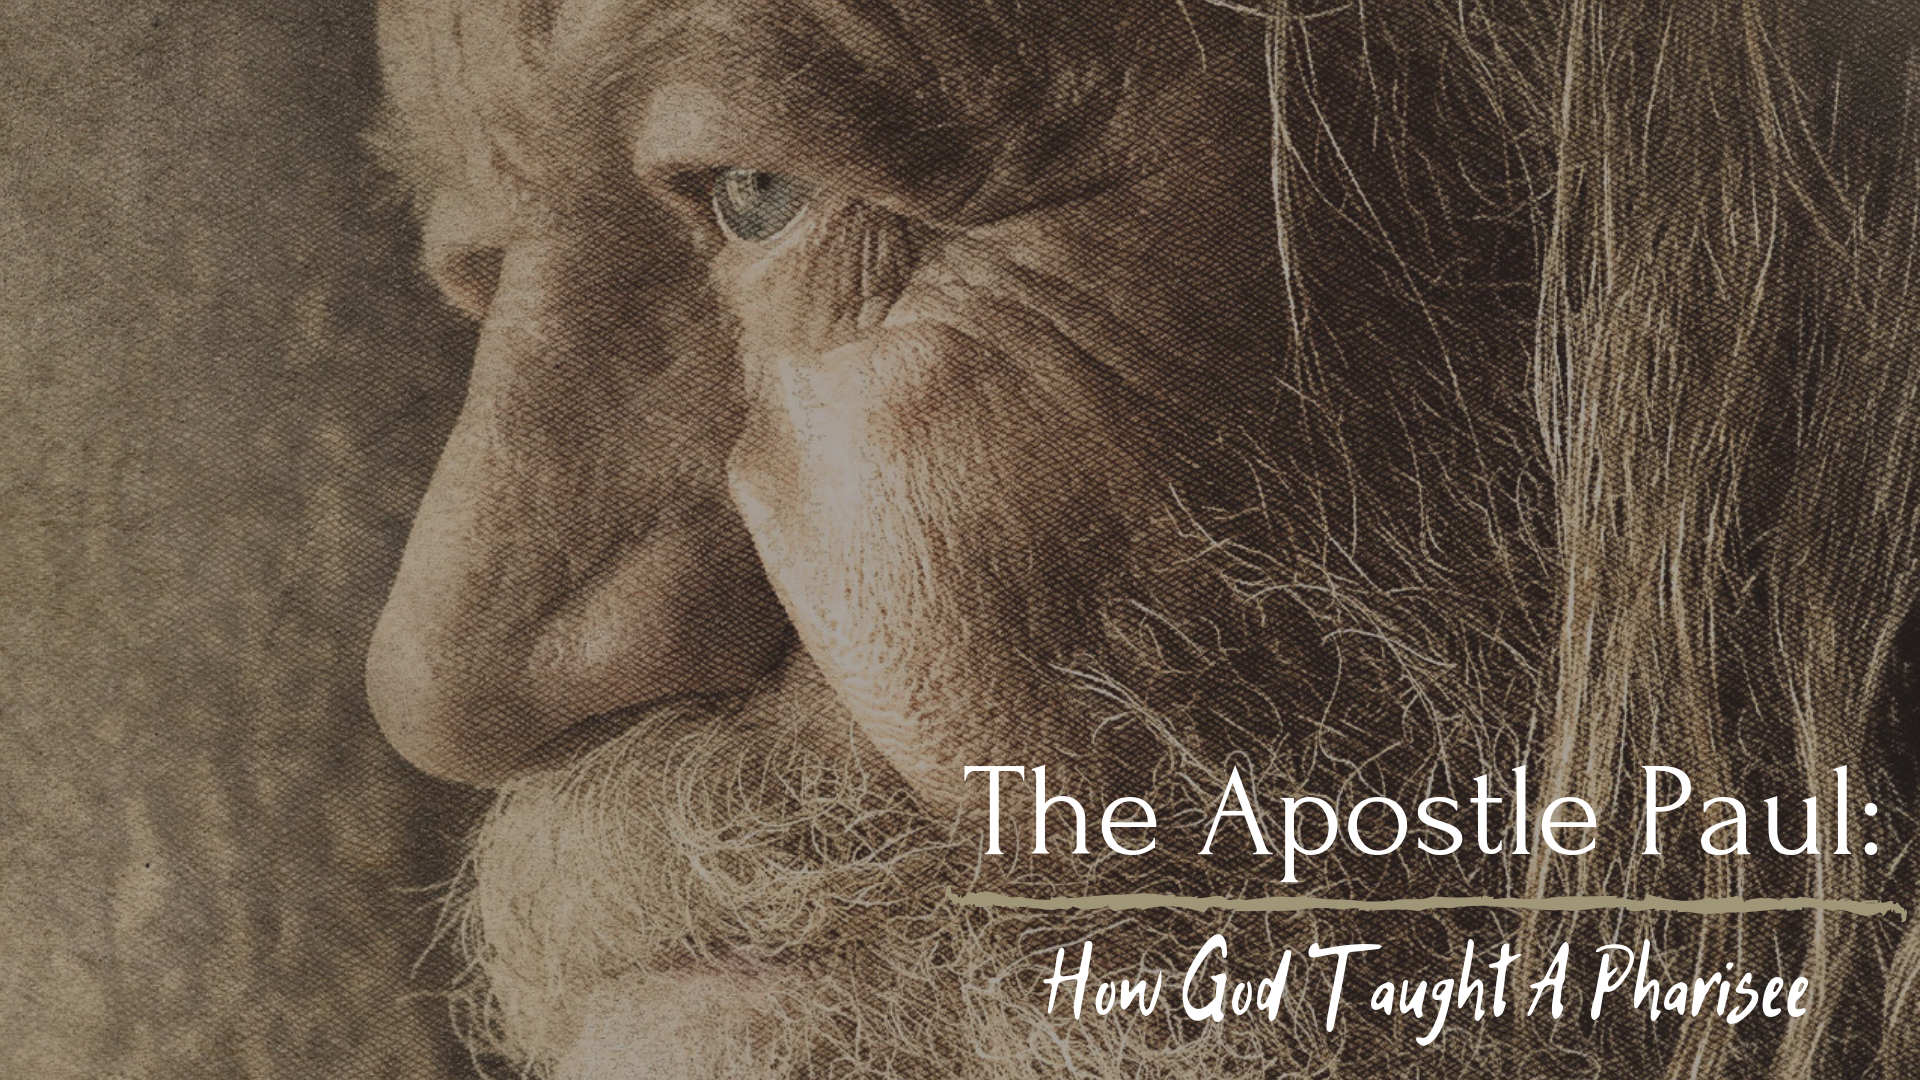 THE APOSTLE PAUL: How God Taught A Pharisee